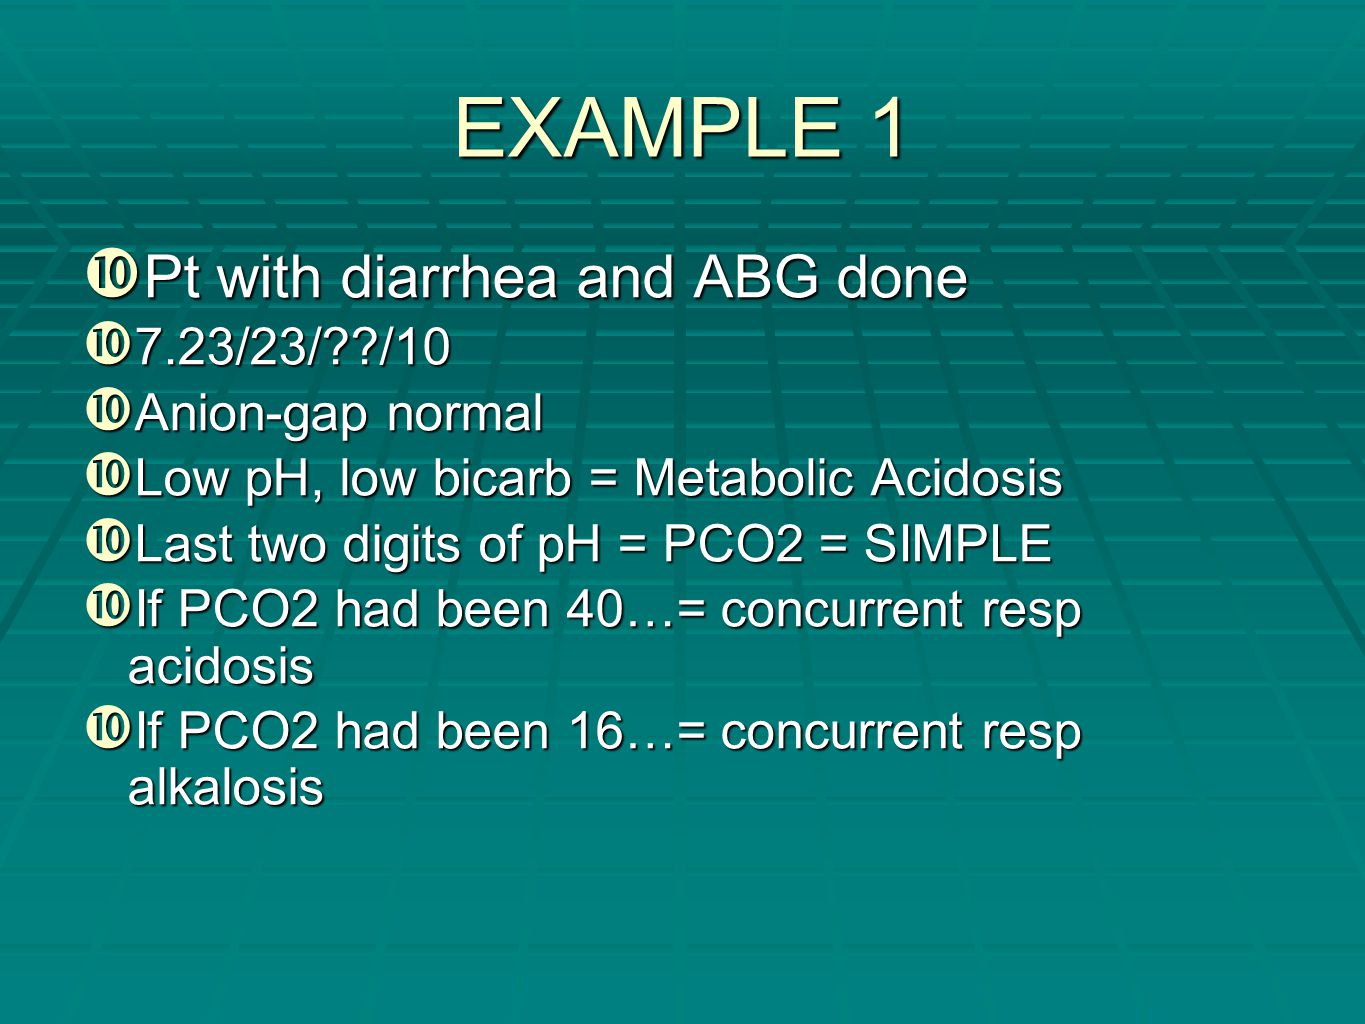 EXAMPLE 1 Pt with diarrhea and ABG done 7.23/23/ /10 Anion-gap normal